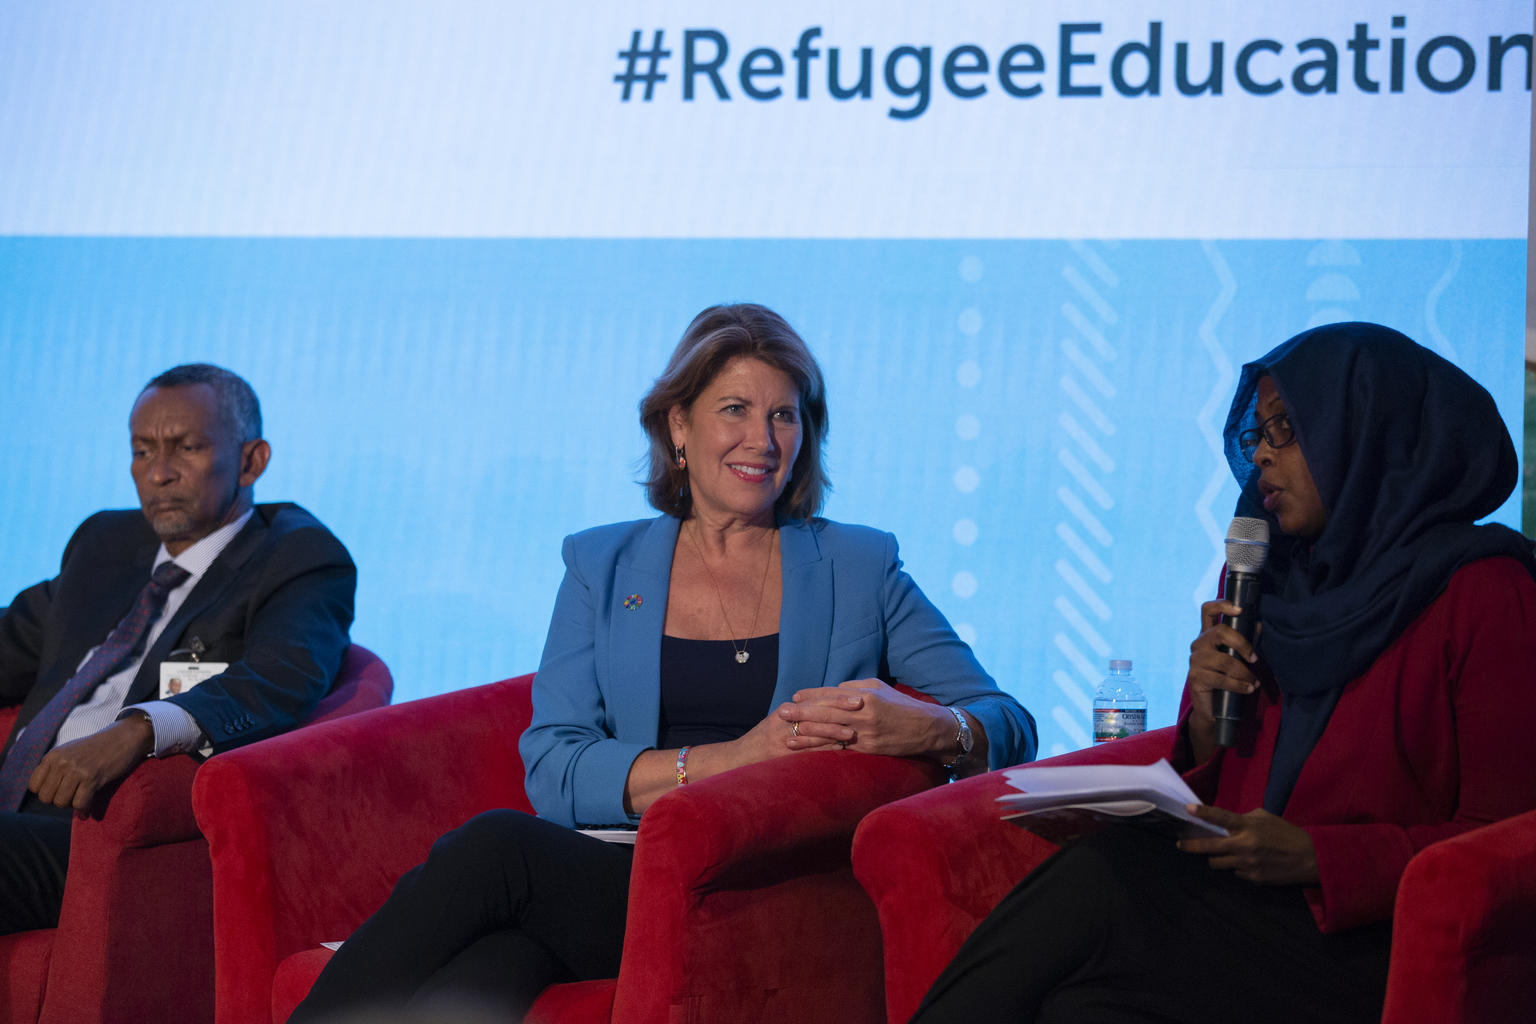 Panel discussion on the inclusion of refugees in national education systems